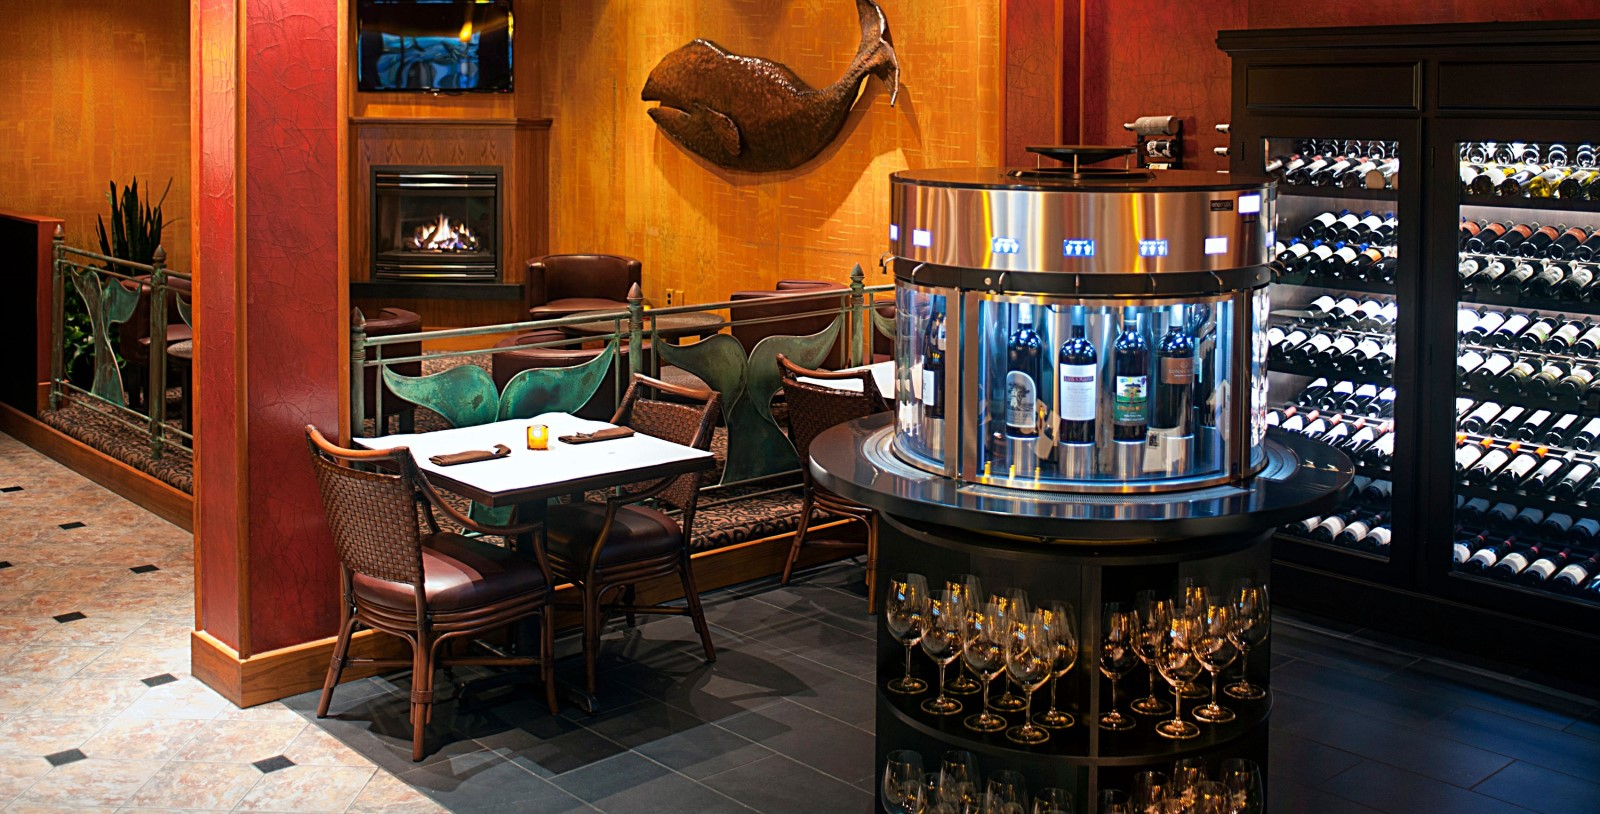 Image Of Whale's Tail Wine Bar Hotel Captain Cook Anchorage Alaska, Dining